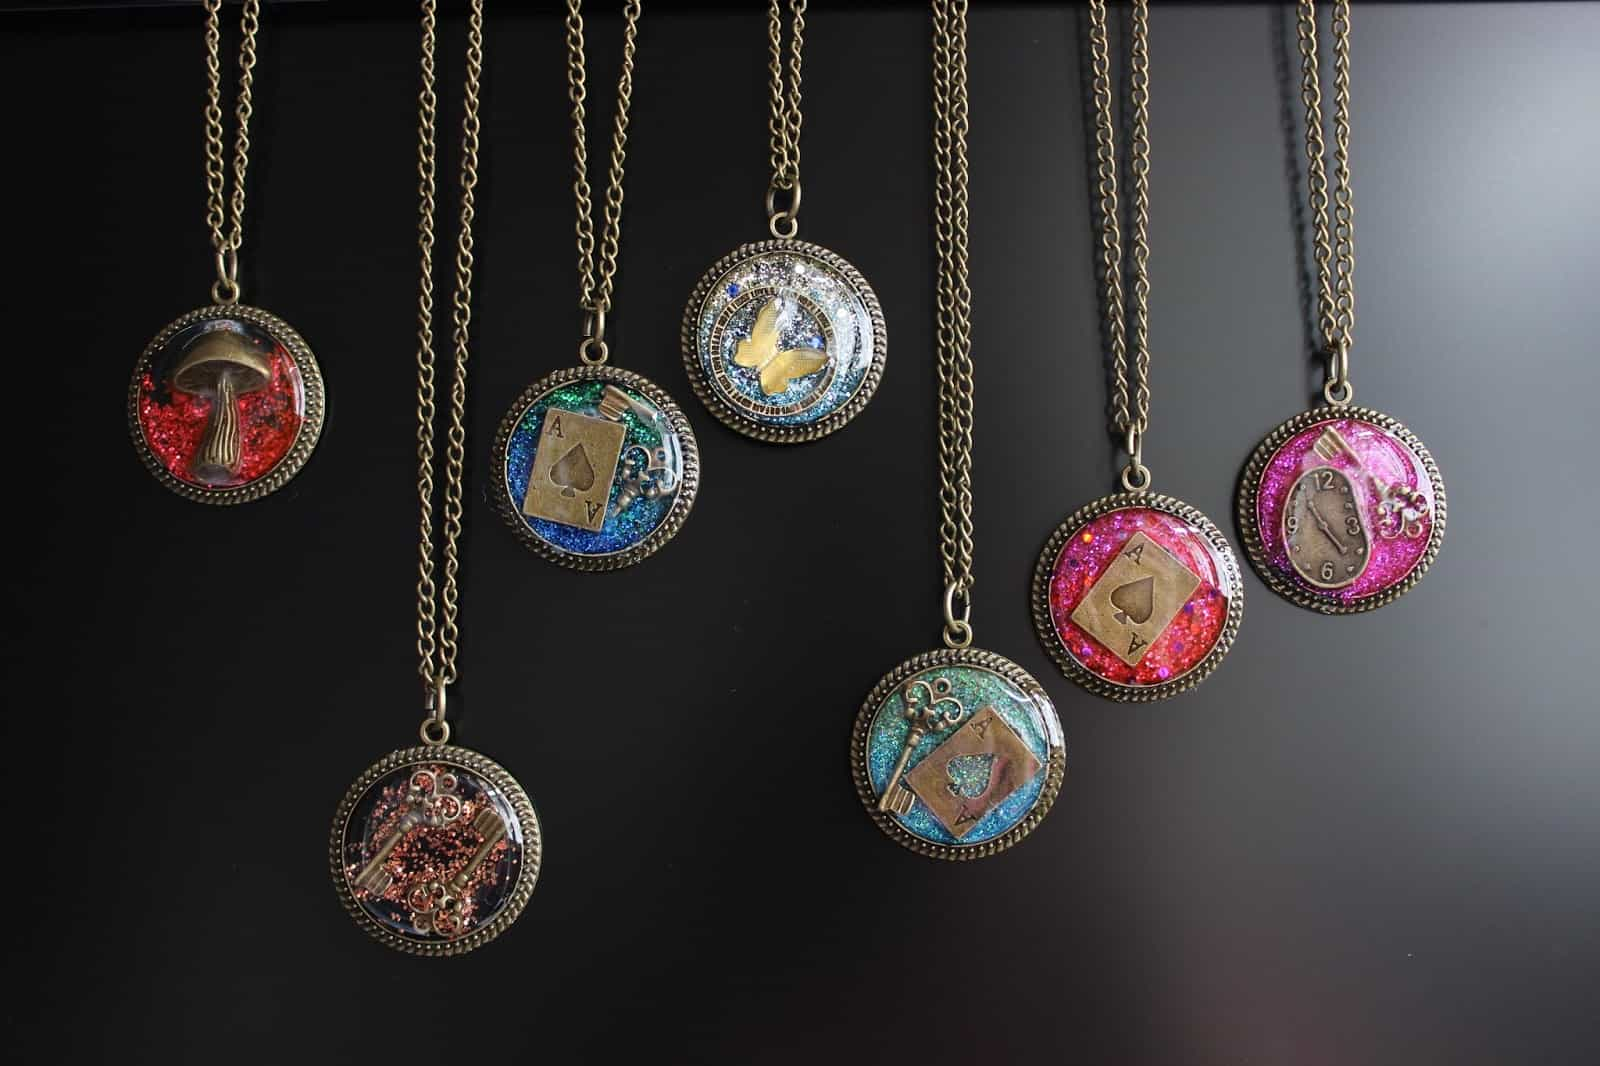 15 diy resin jewelry projects worthy of gifting diy glitter resin jewelry solutioingenieria